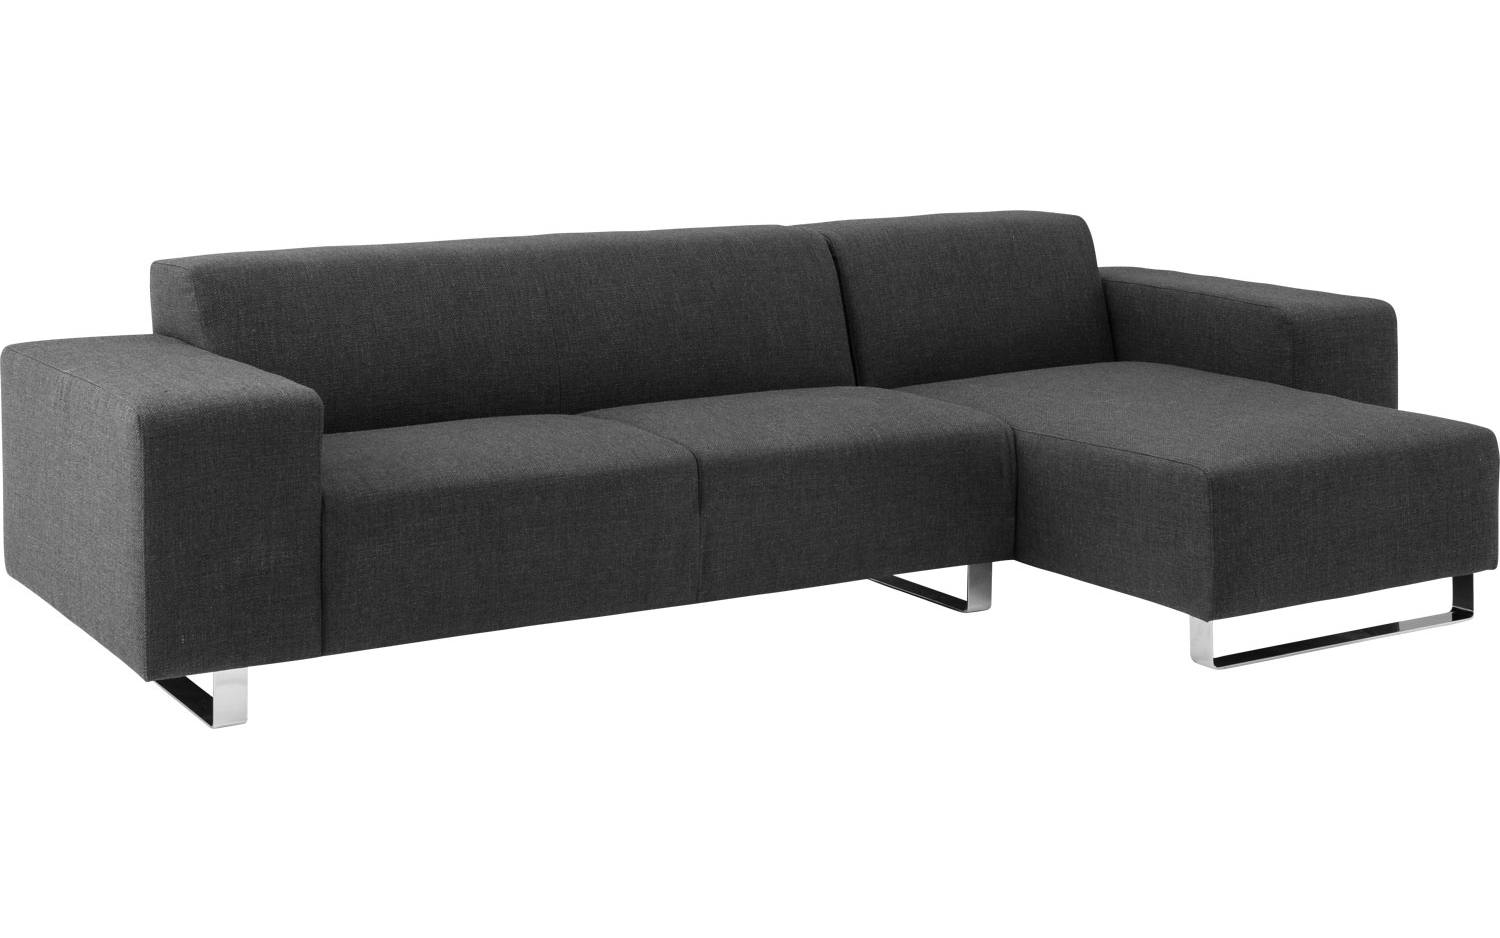 Bank Met Chaise Longue Links Hoekbank Shop Via Interieur Webwinkel